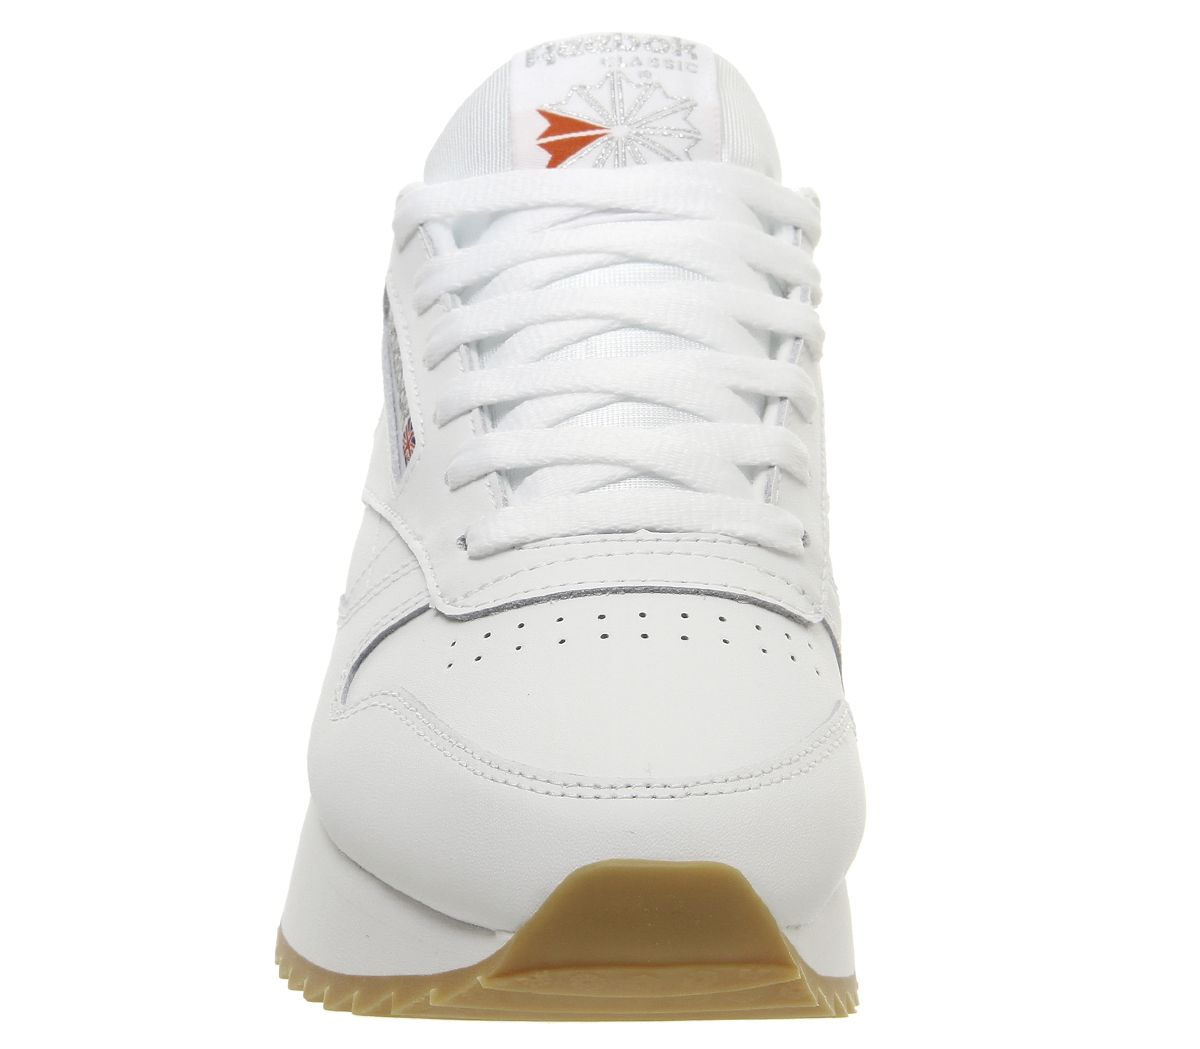 4eb8dbd9dd7 Reebok Classic Leather Double Trainers White Gum Silver Metallic ...